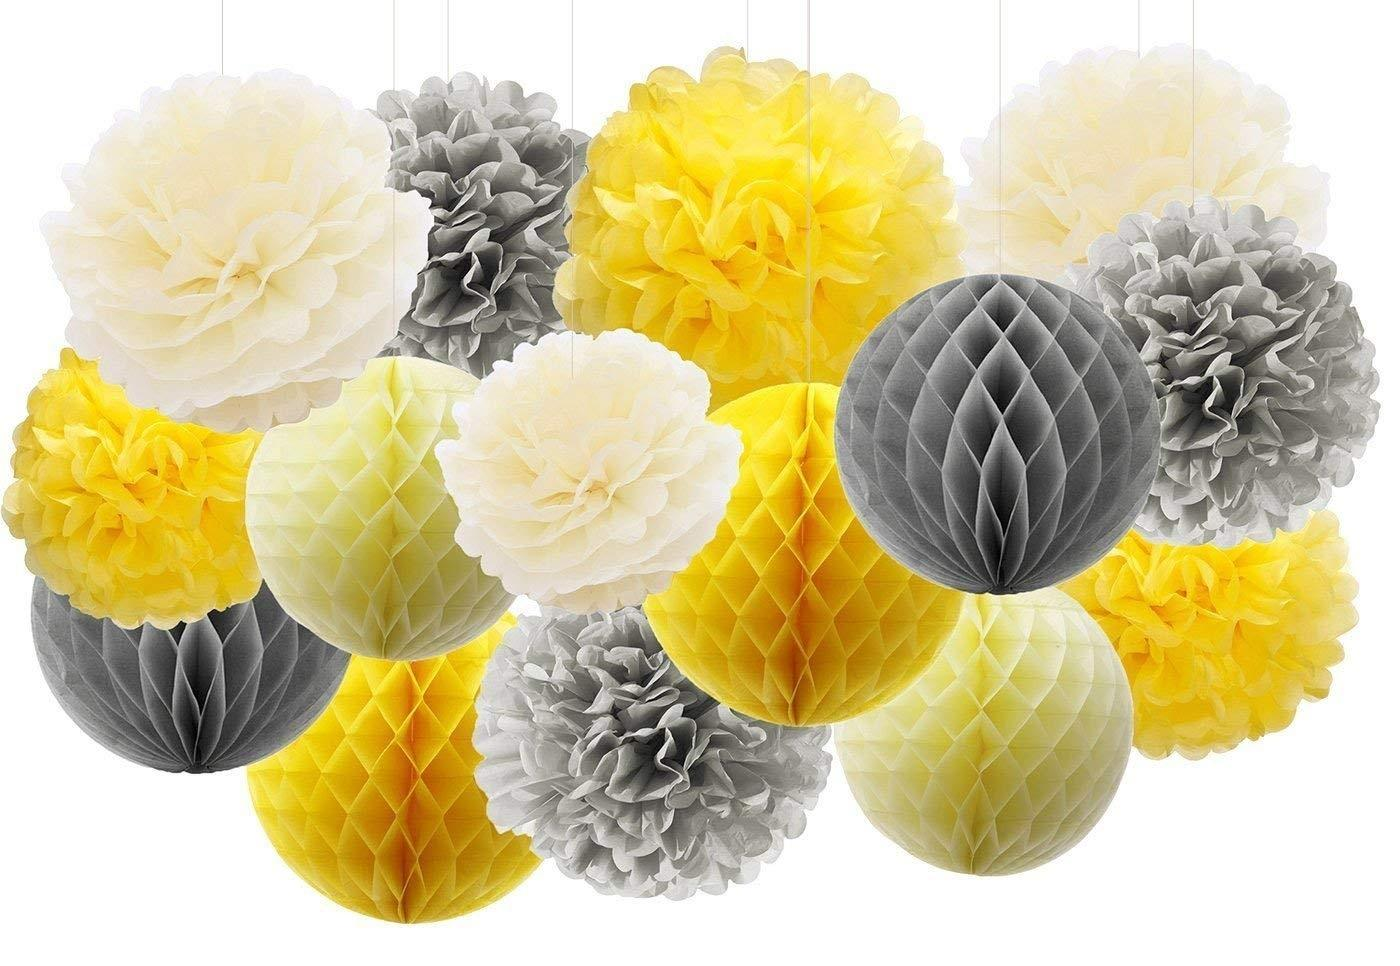 15pcs Yellow Grey Elephant Baby Shower Decorations Tissue Paper Pom Pom Tissue Paper Honeycomb Balls Paper Lanterns for Bridal Shower Birthday Decorations /You Are My Sunshine Party Decor